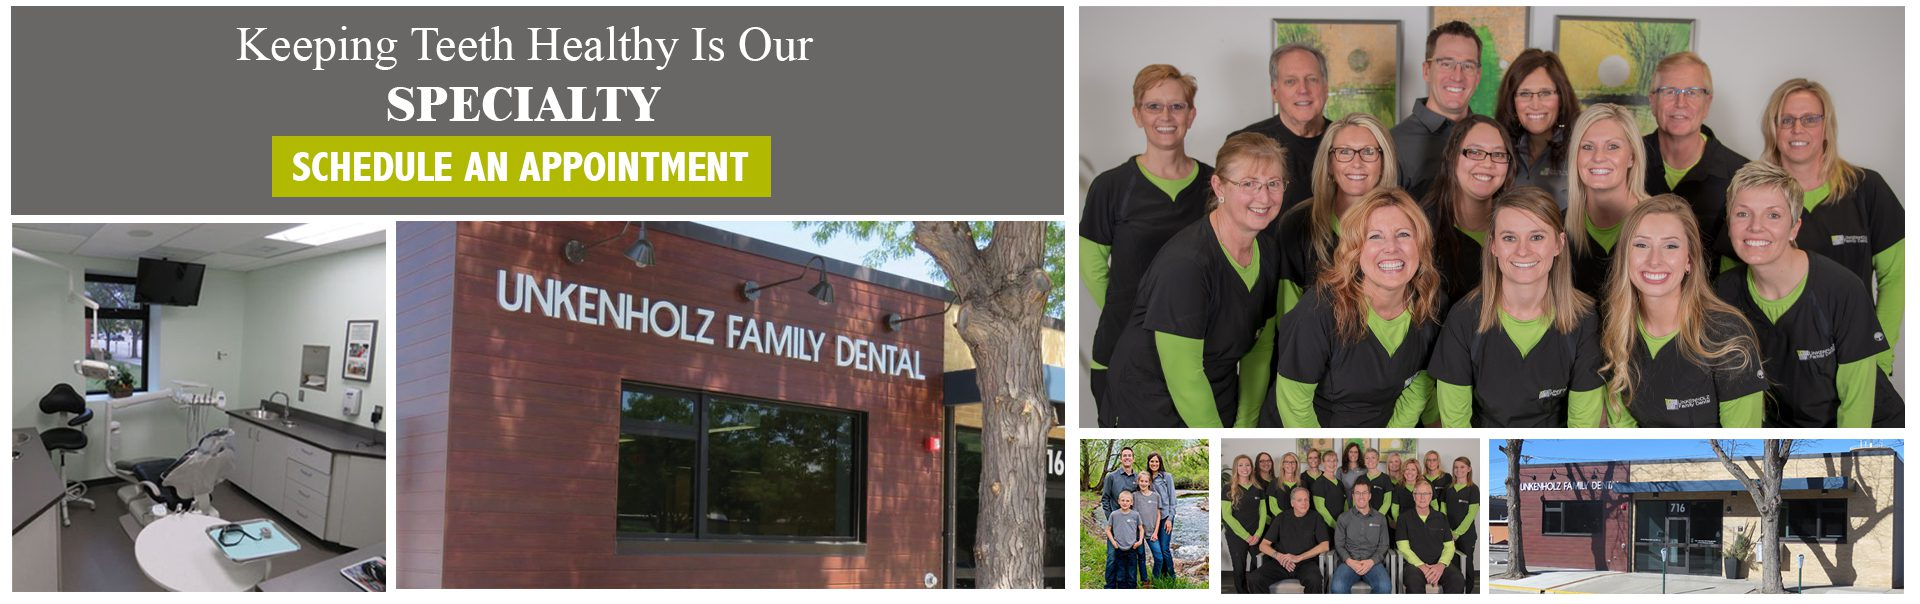 Unkenholz Family Dental Collage